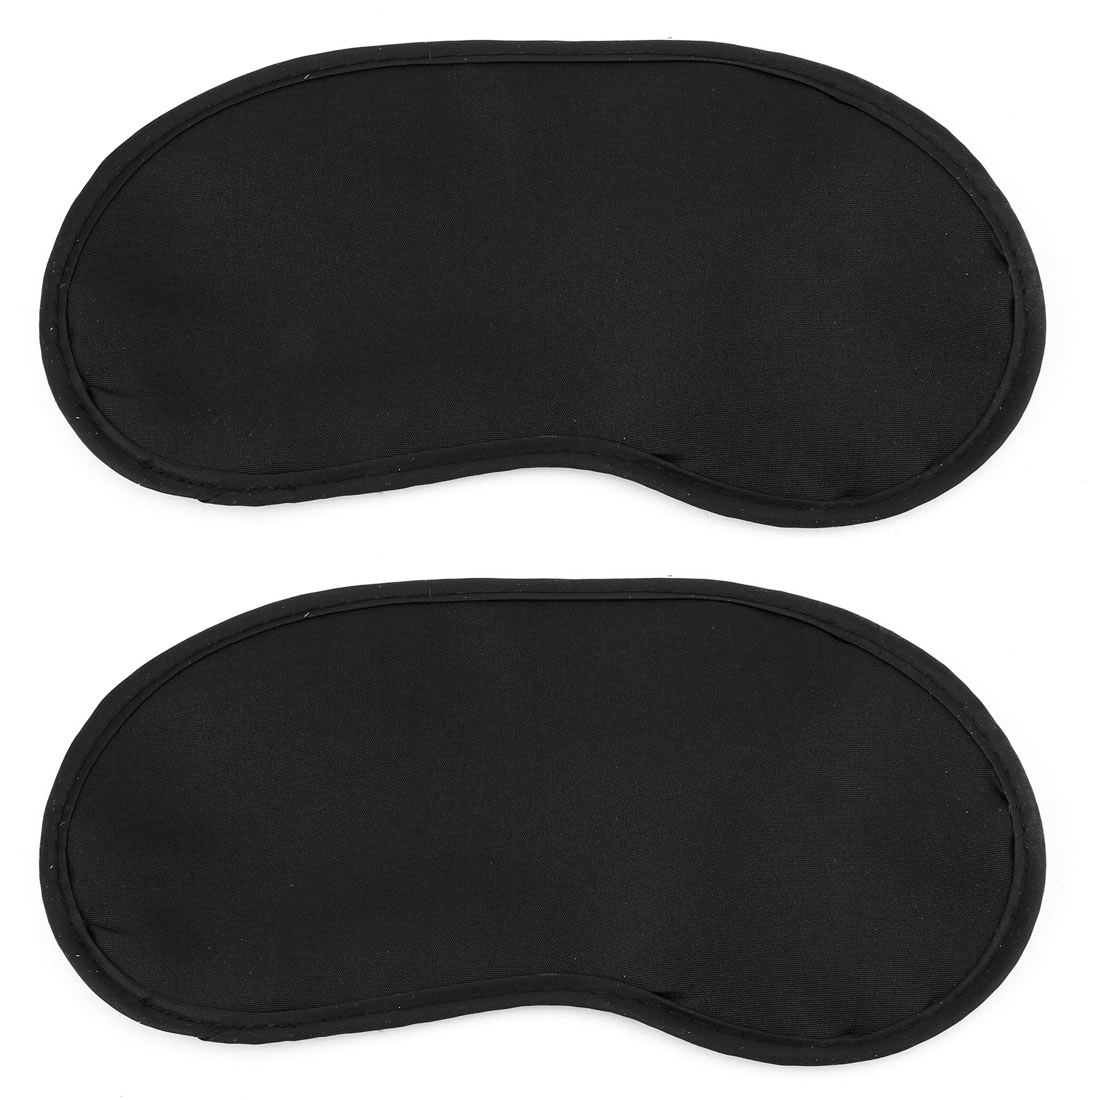 Elastic Strap Black Eye Mask Eyeshade Sleep Blinder Shade Cover 2 Pcs